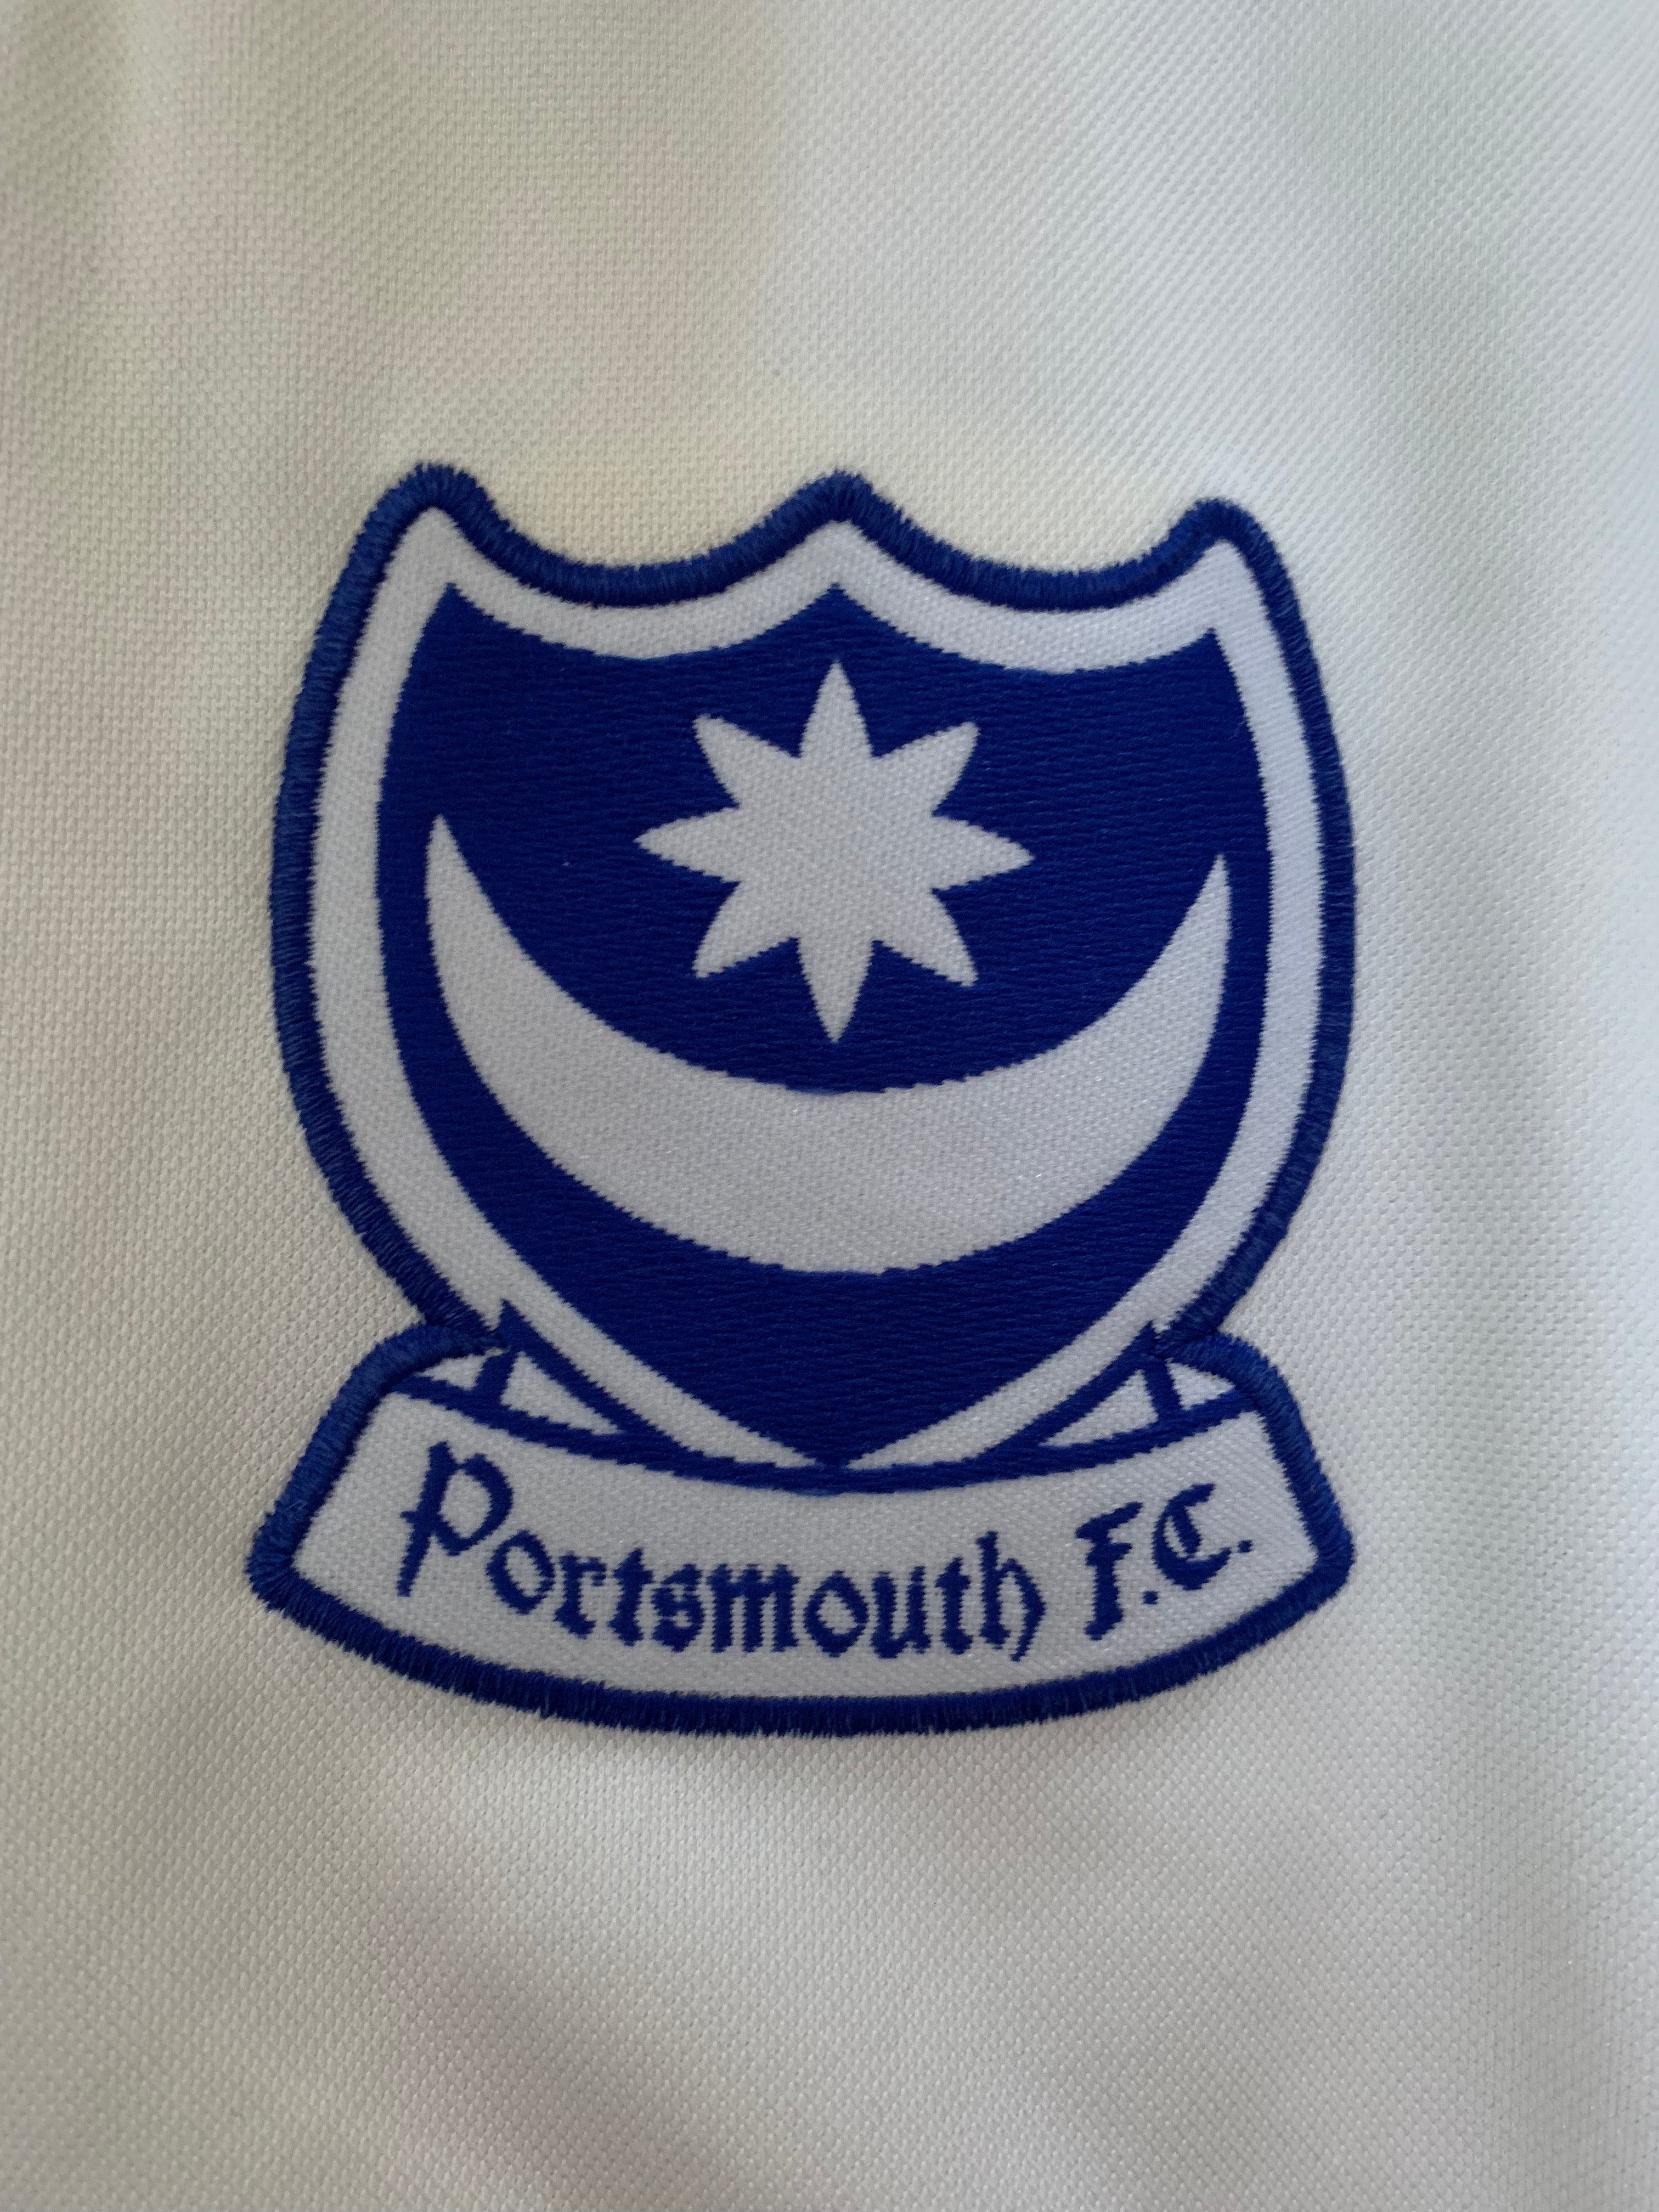 2000/02 Portsmouth Away Shirt (M)